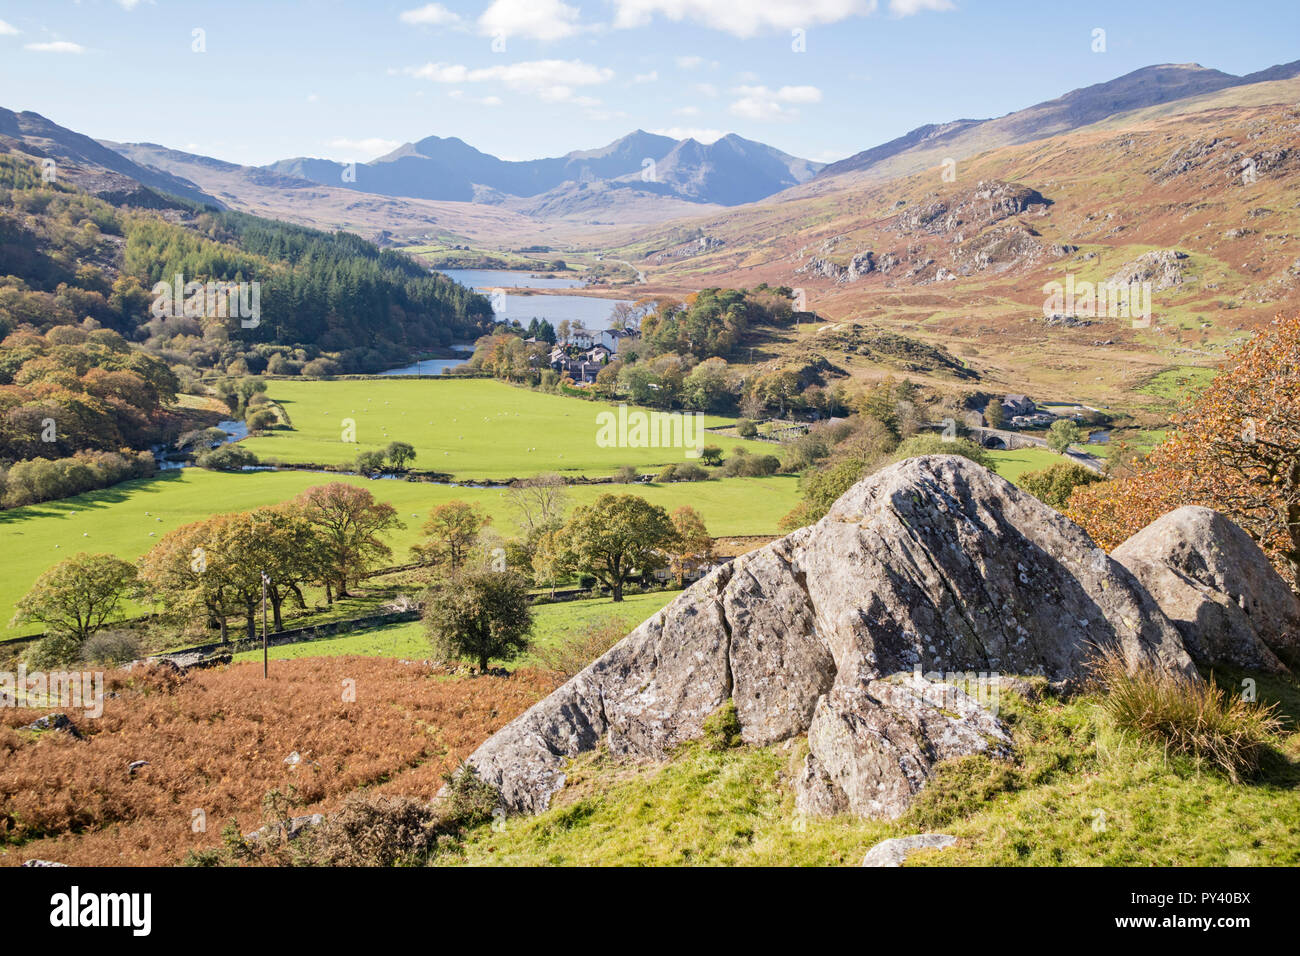 The Snowdon Horseshoe range from above Capel Curig, Snowdonia National Park, North Wales, UK Stock Photo